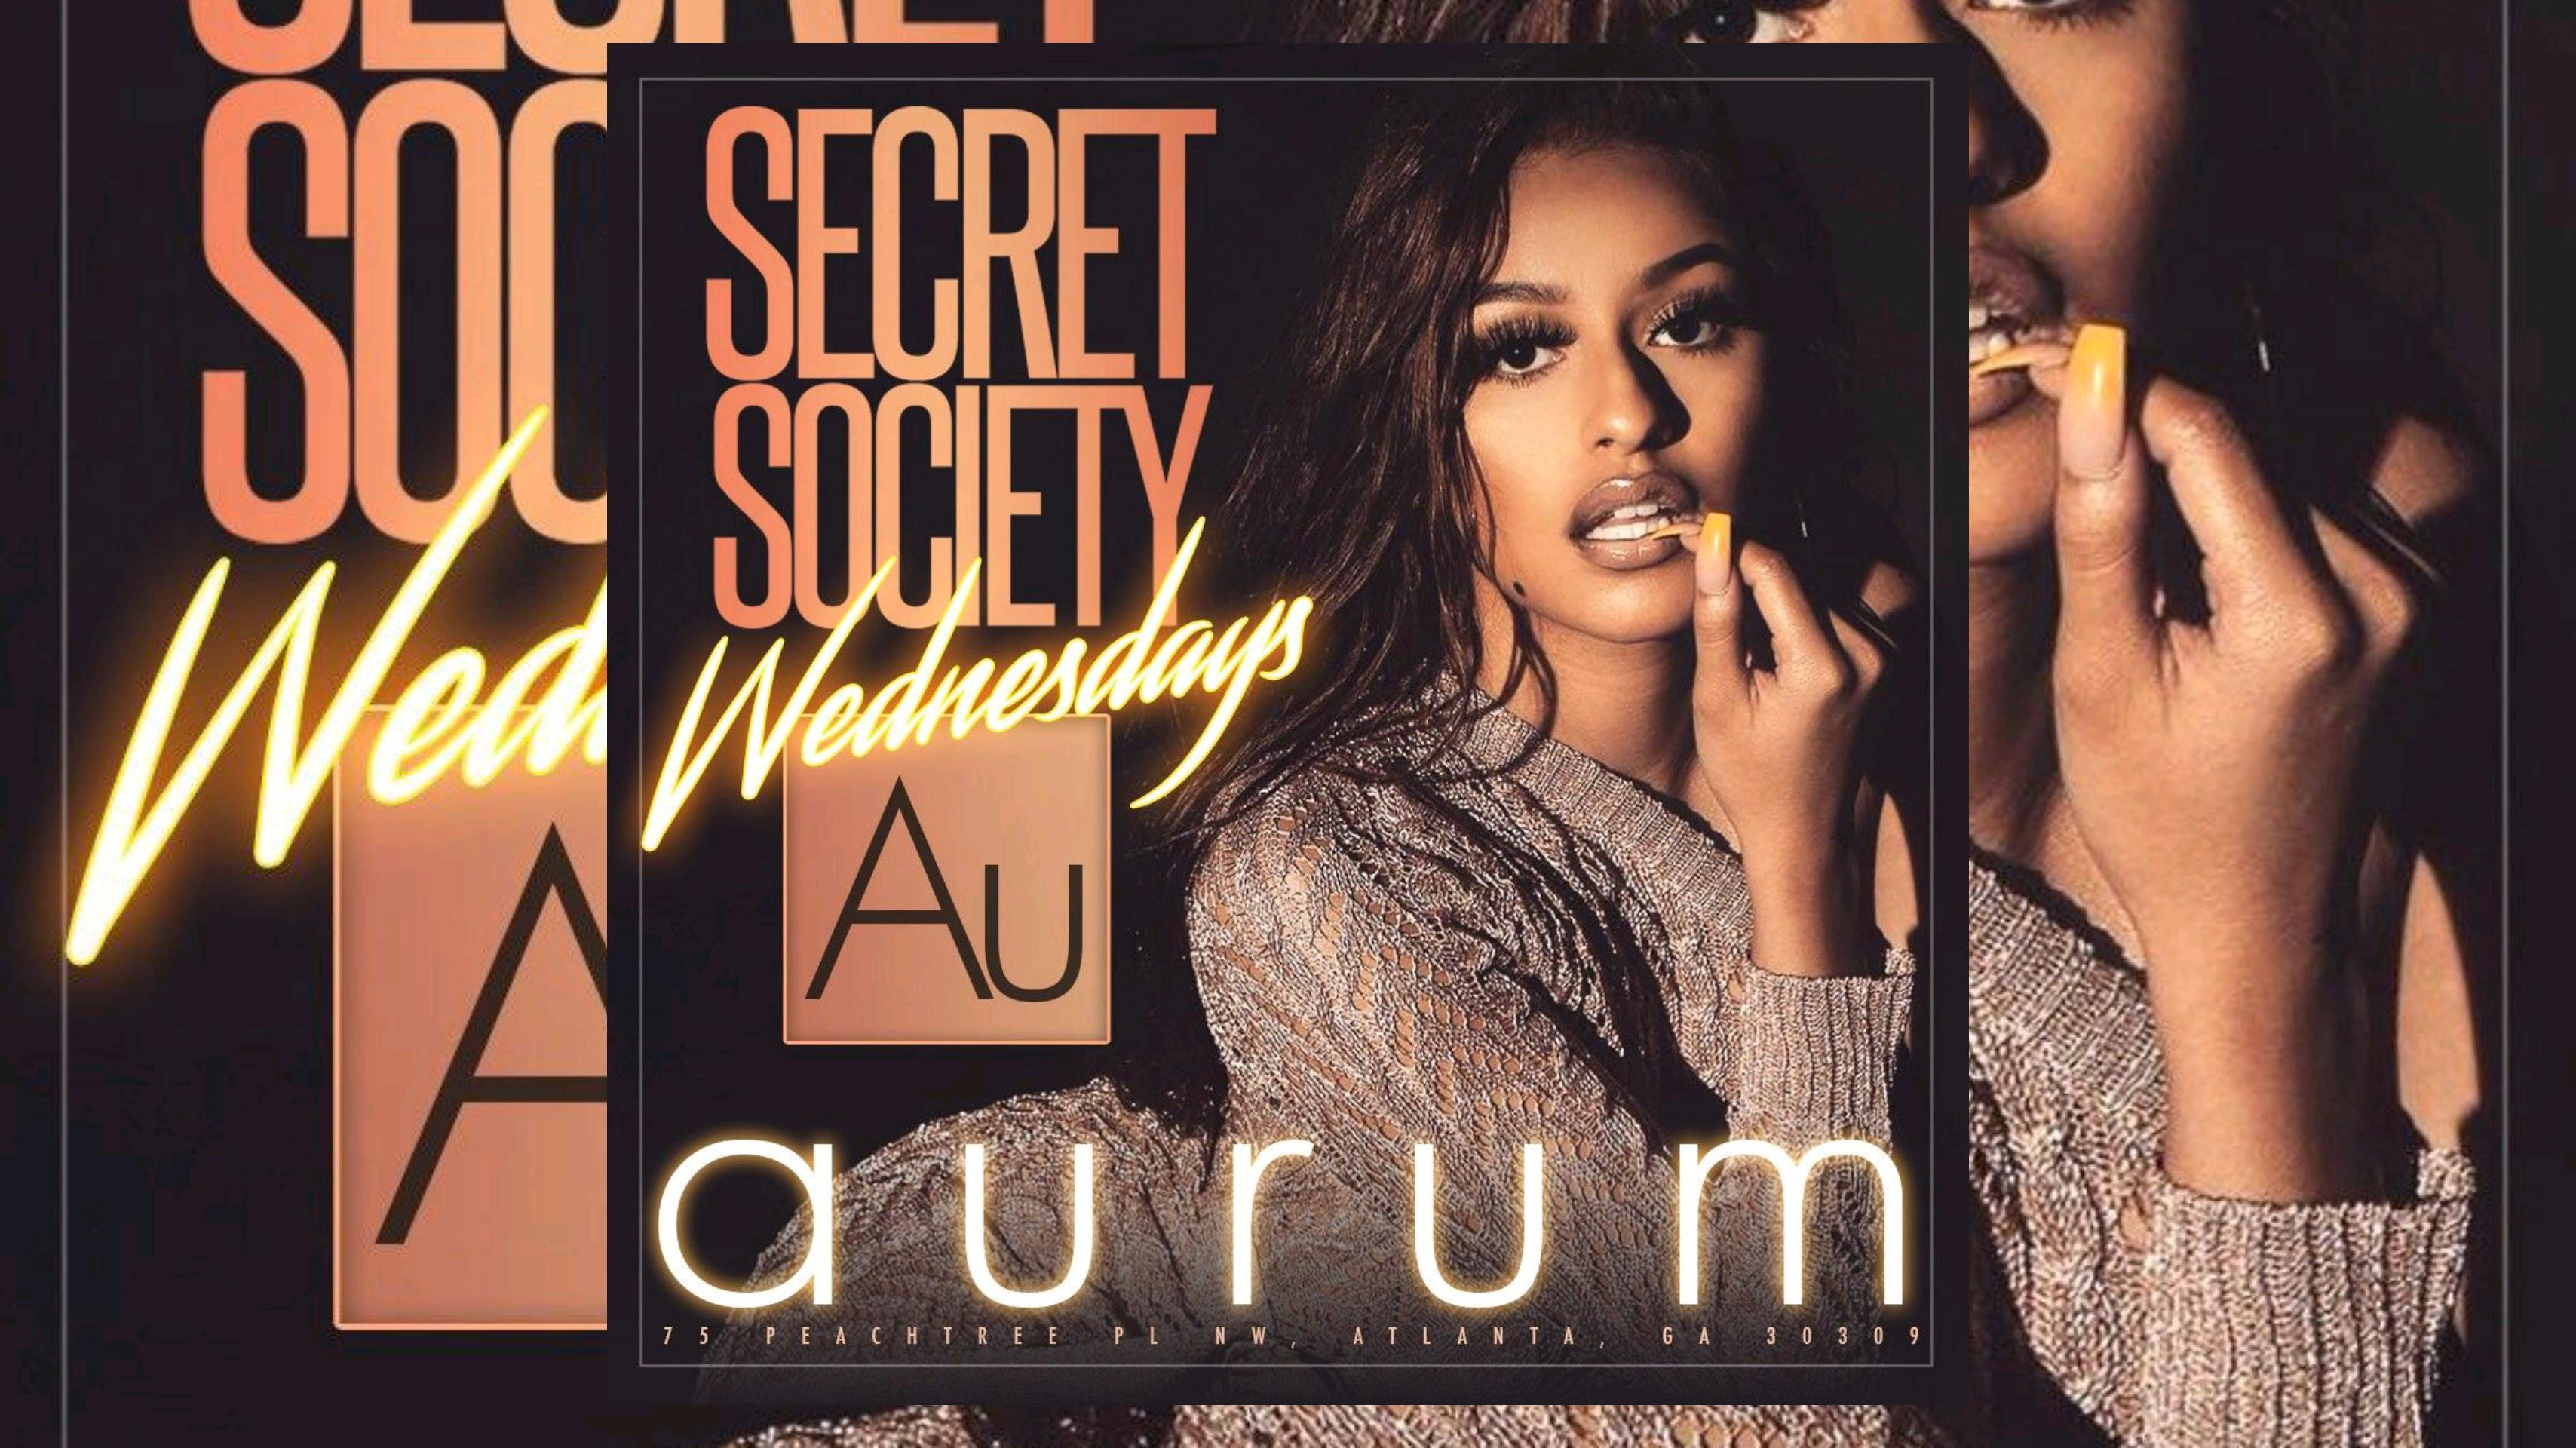 AURUM LOUNGE: Secret Society Wednesdays...Enter FREE with RSVP